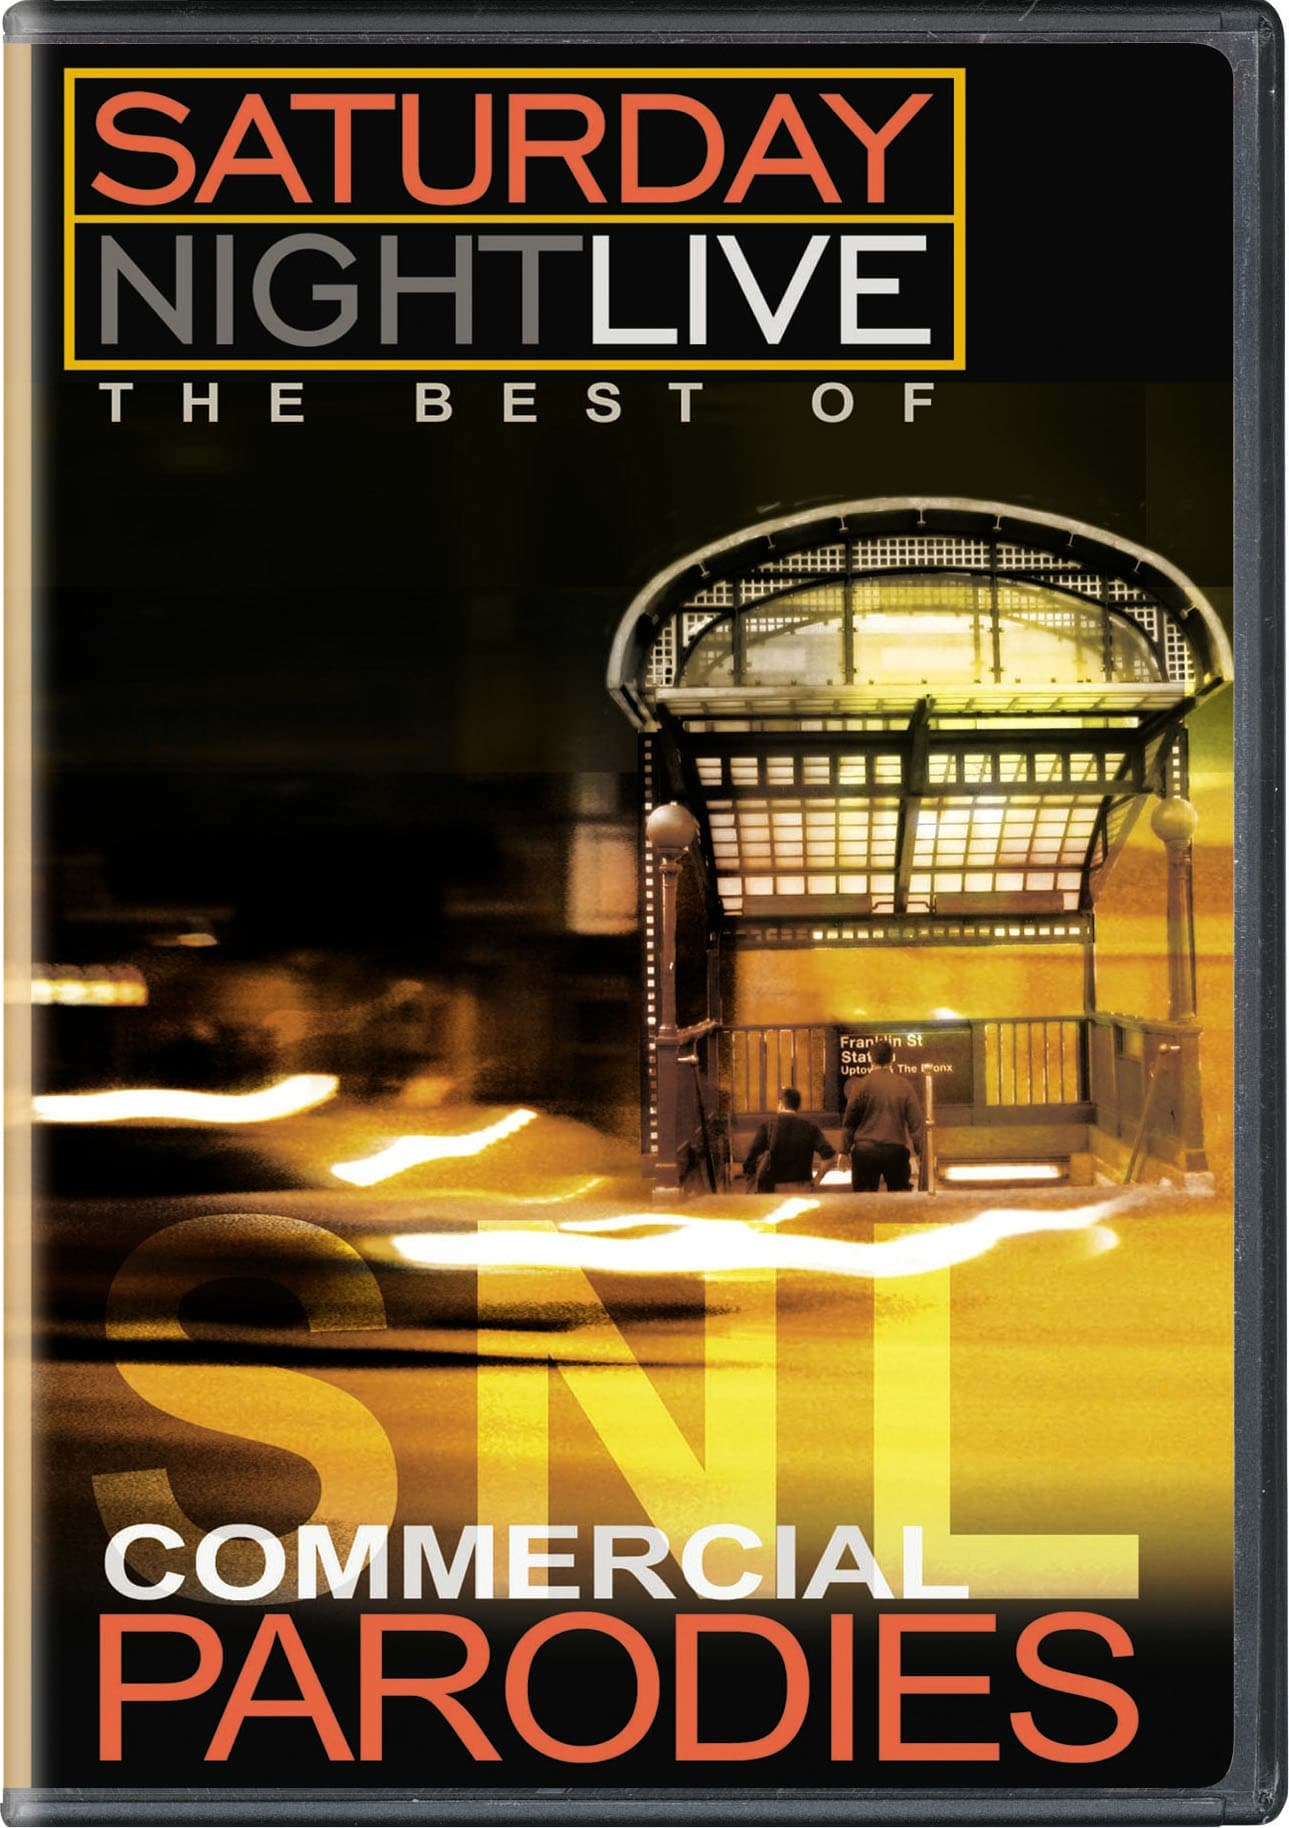 Saturday Night Live: The Best of Commercial Parodies [DVD]